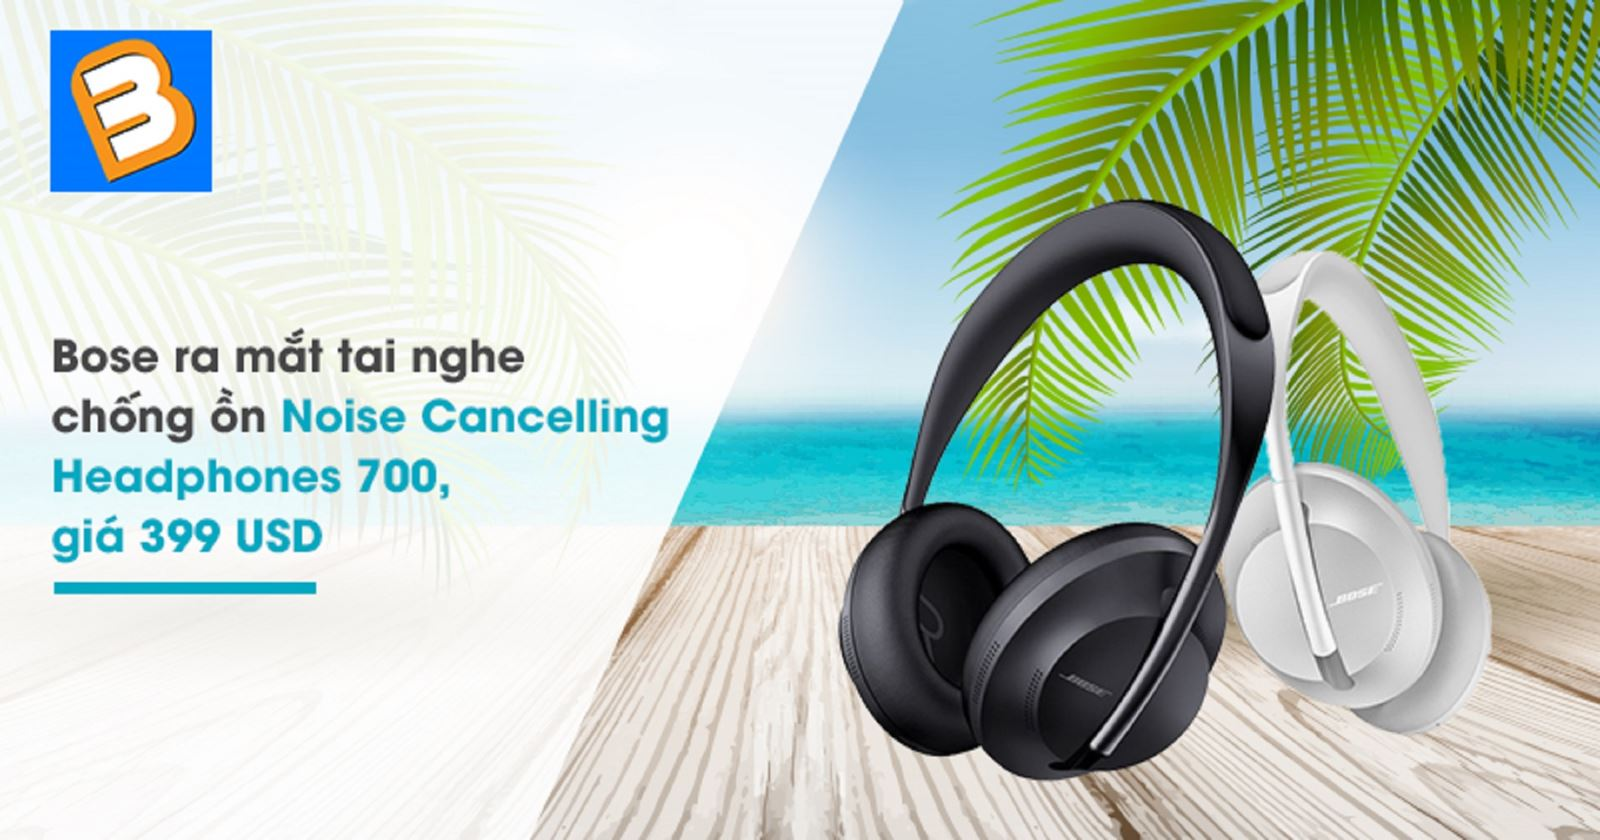 Bosera mắt tai nghe chống ồnNoise Cancelling Headphones 700, giá 399 USD